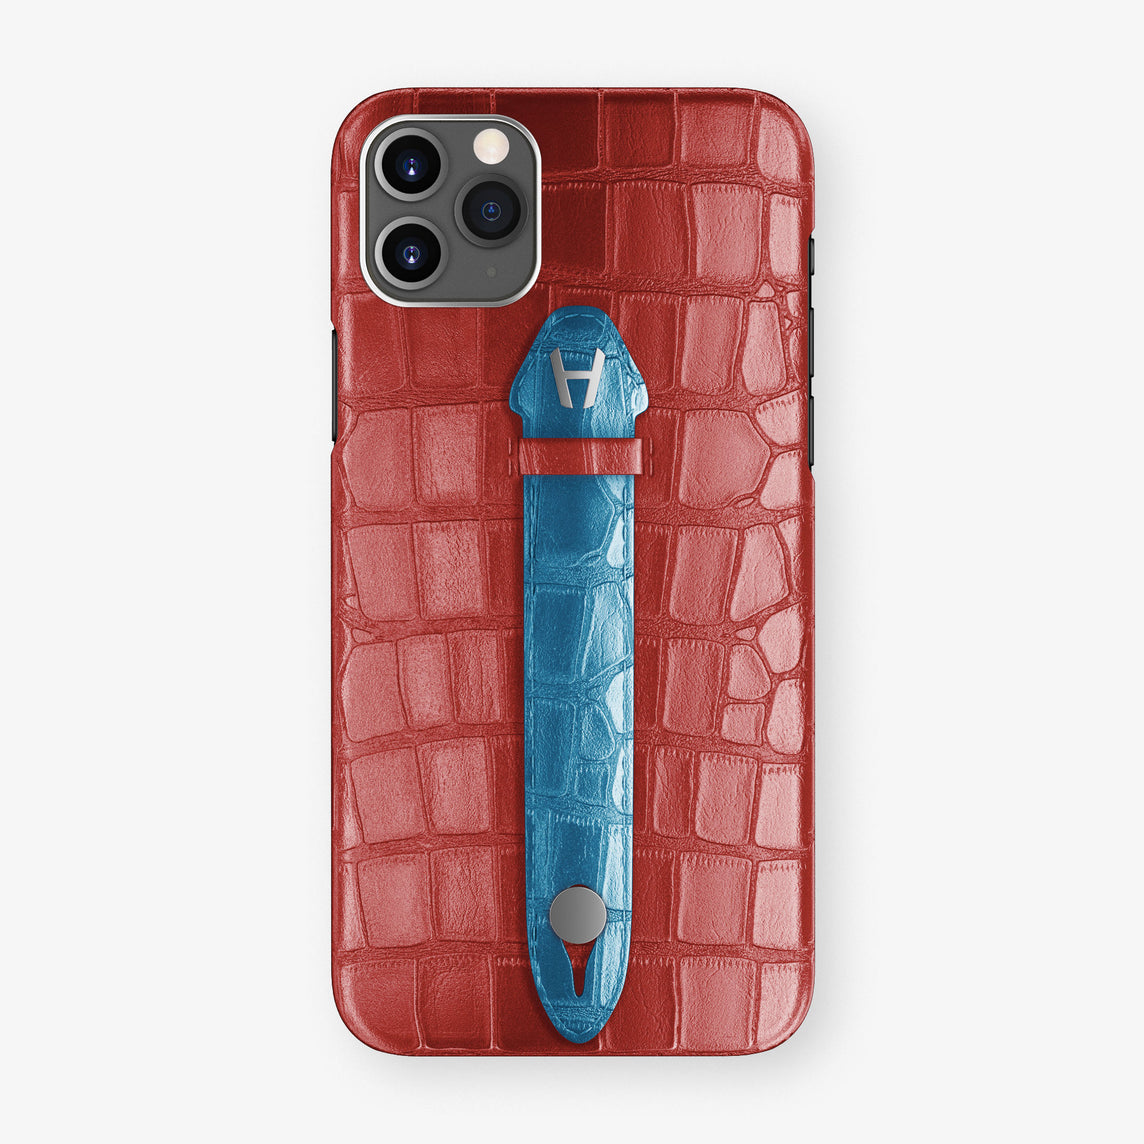 Alligator Centered Finger Case Phone 11 Pro Max  | Red-Ruby-Nacre/Blue-Lagoon - Stainless-Steel